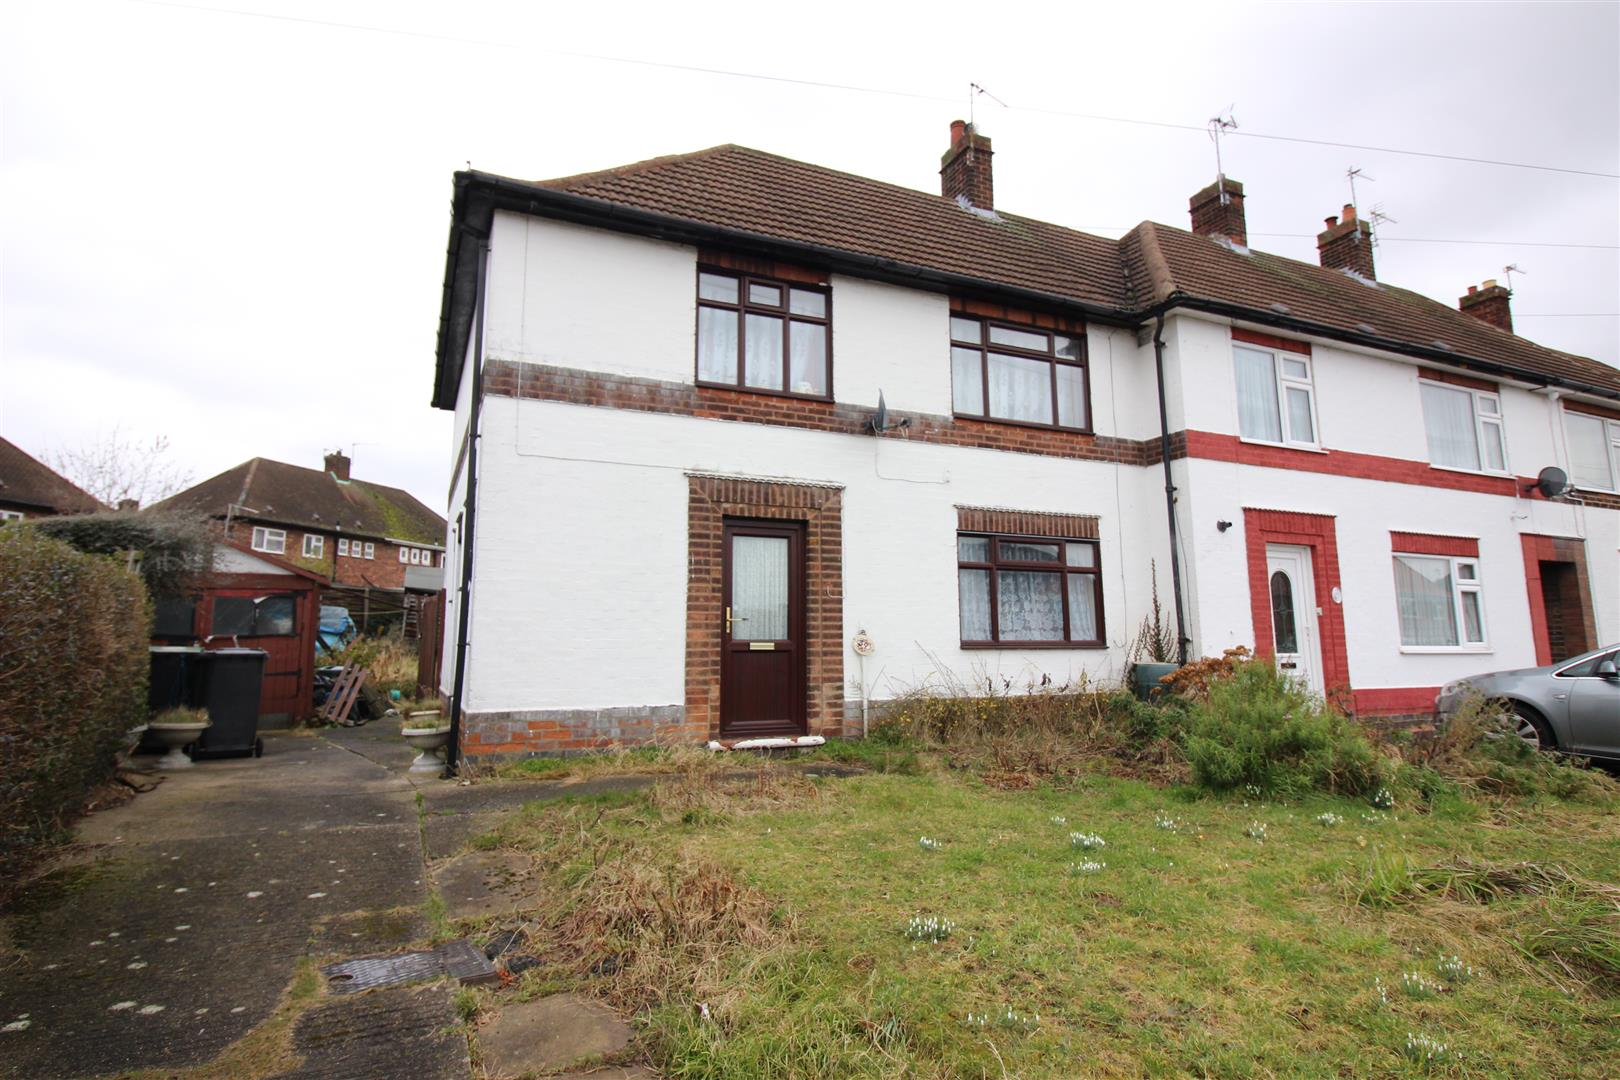 3 Bedrooms End Of Terrace House for sale in New Eaton Road, Stapleford